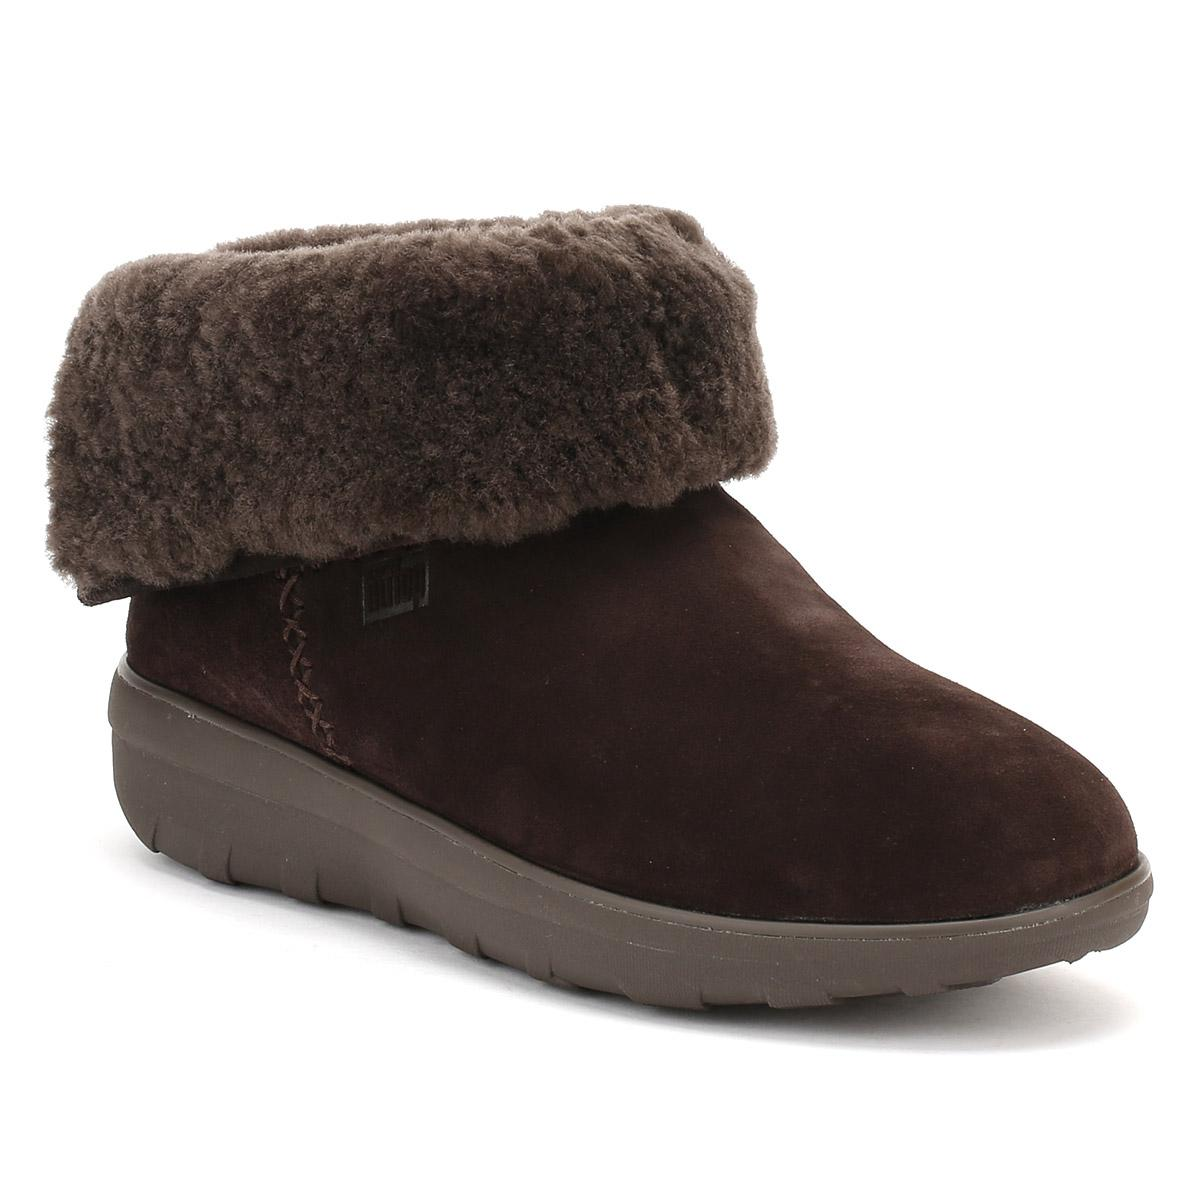 adc2a111b57329 Fitflop Womens Chocolate Dark Brown Mukluk Shorty Ii Boots in Brown ...